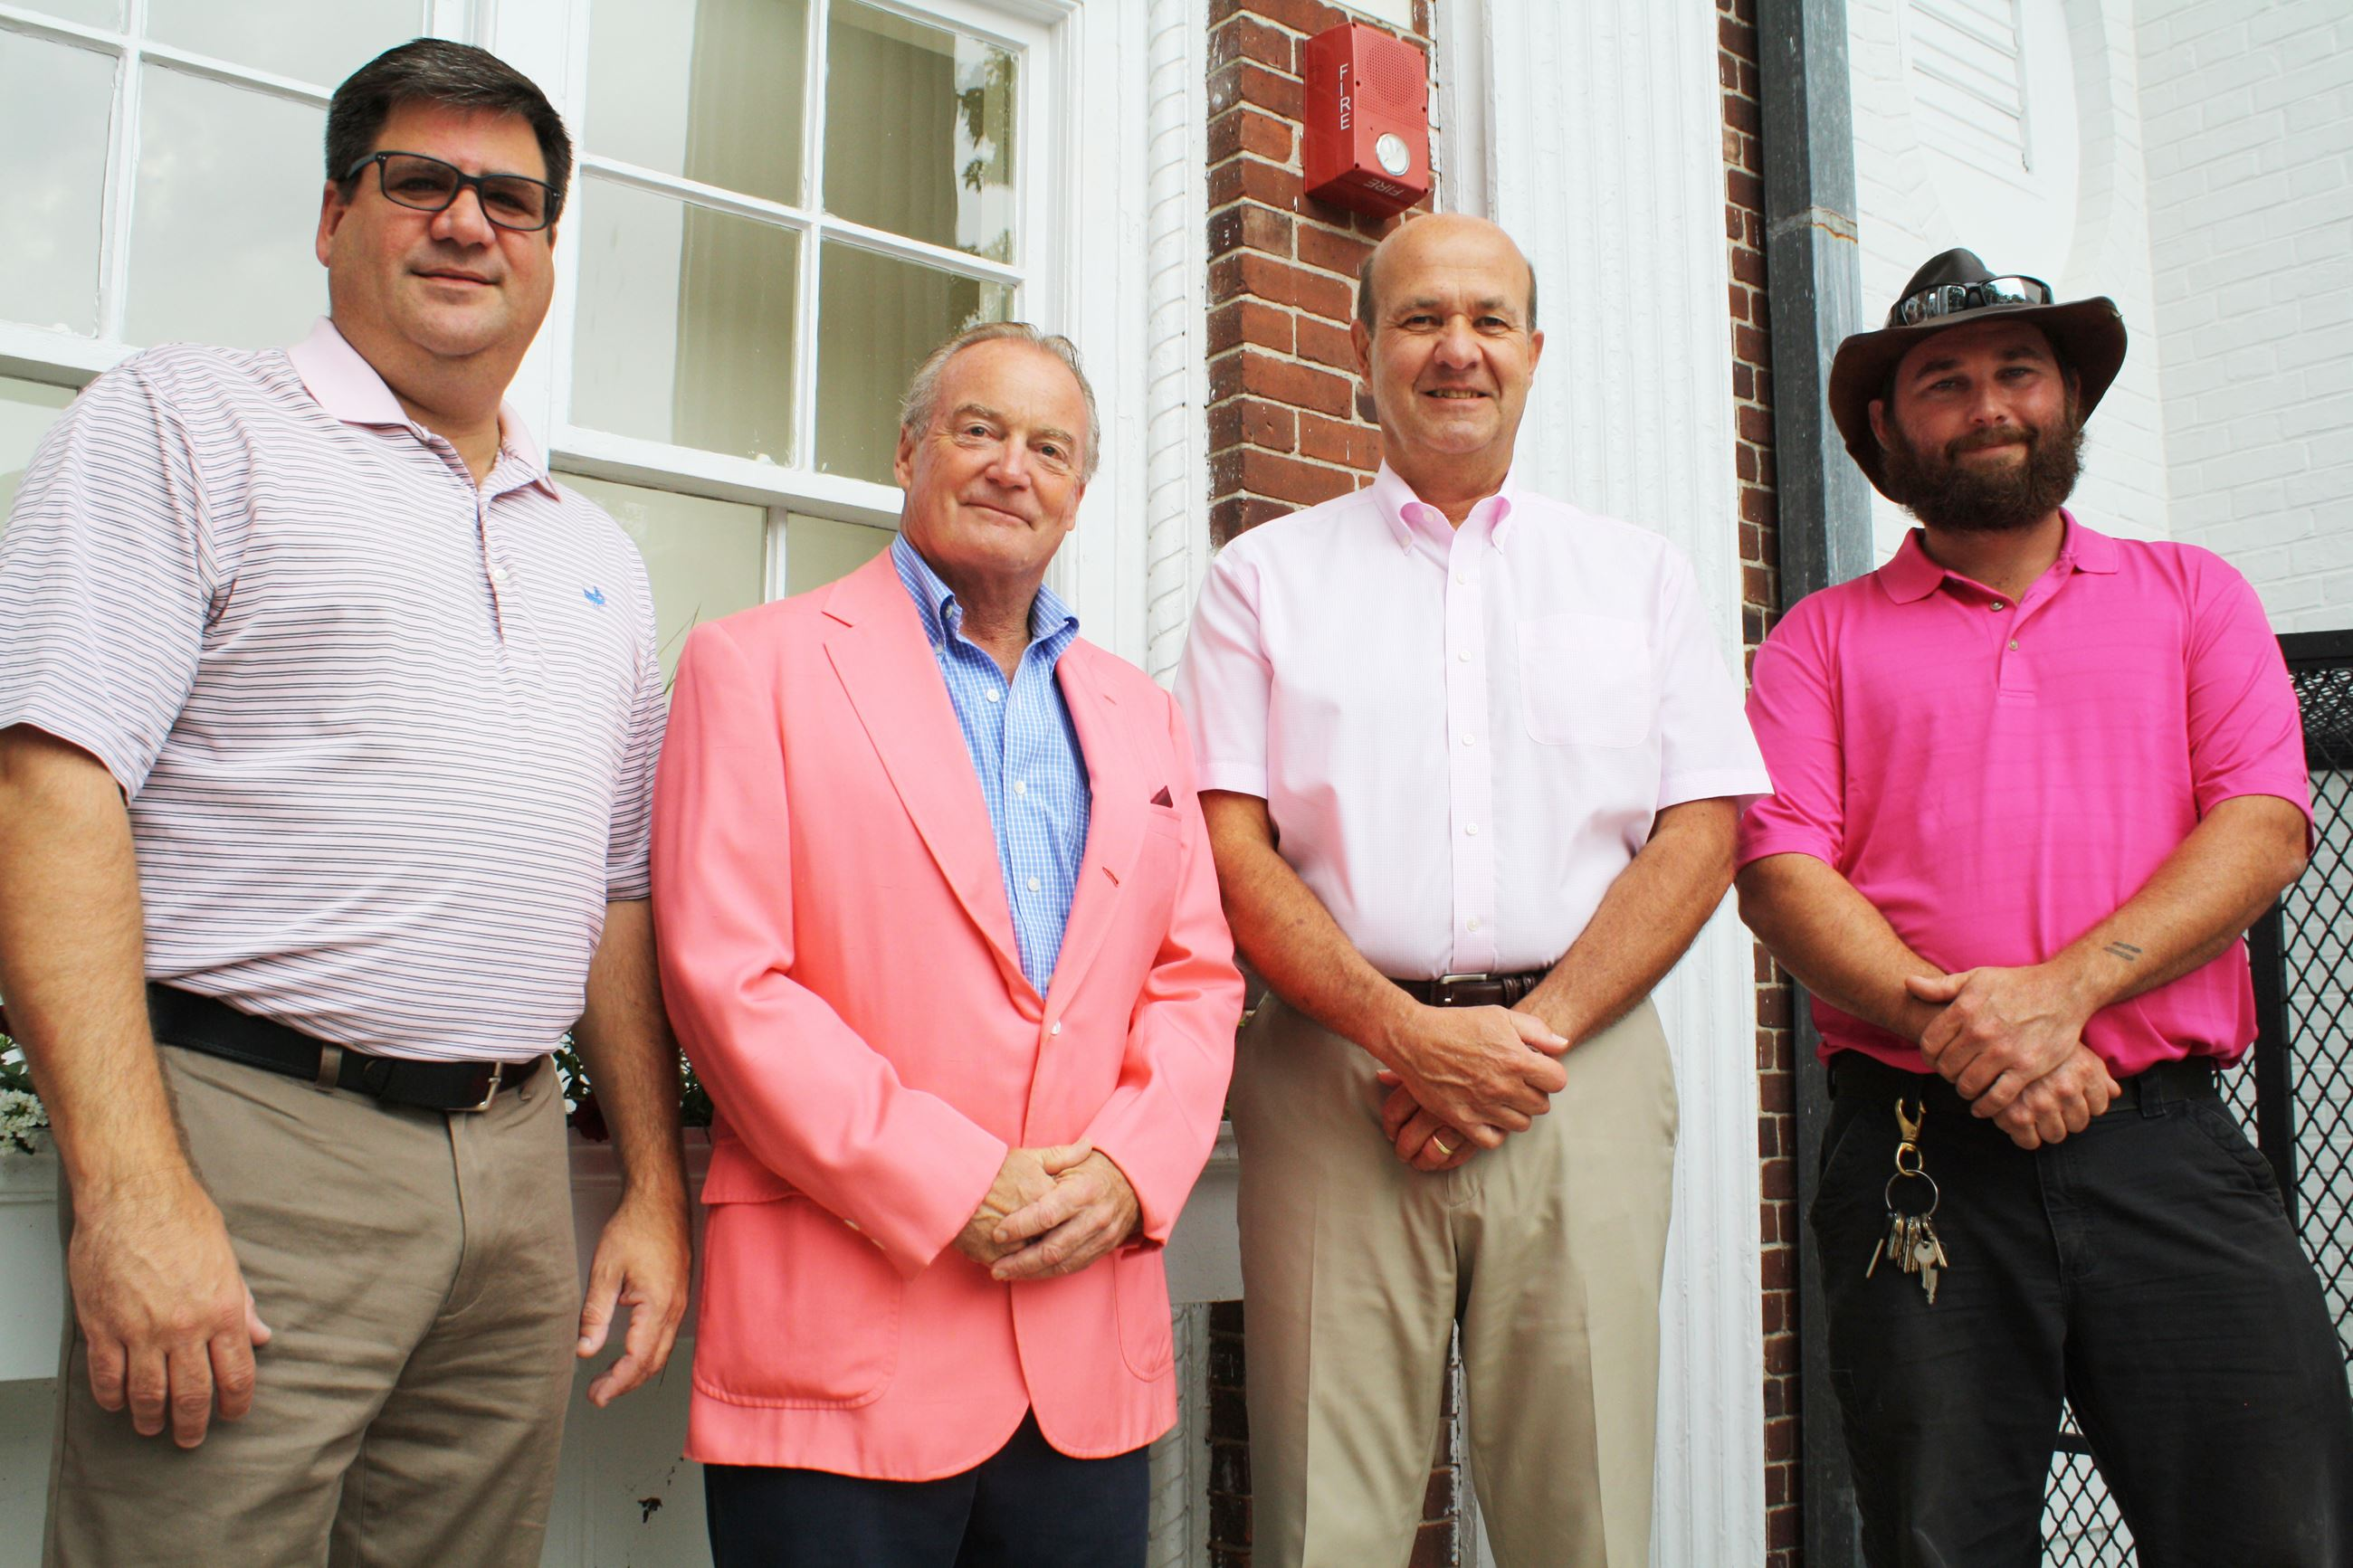 Image of Southampton Village Officials - Real Men Wear Pink campaign